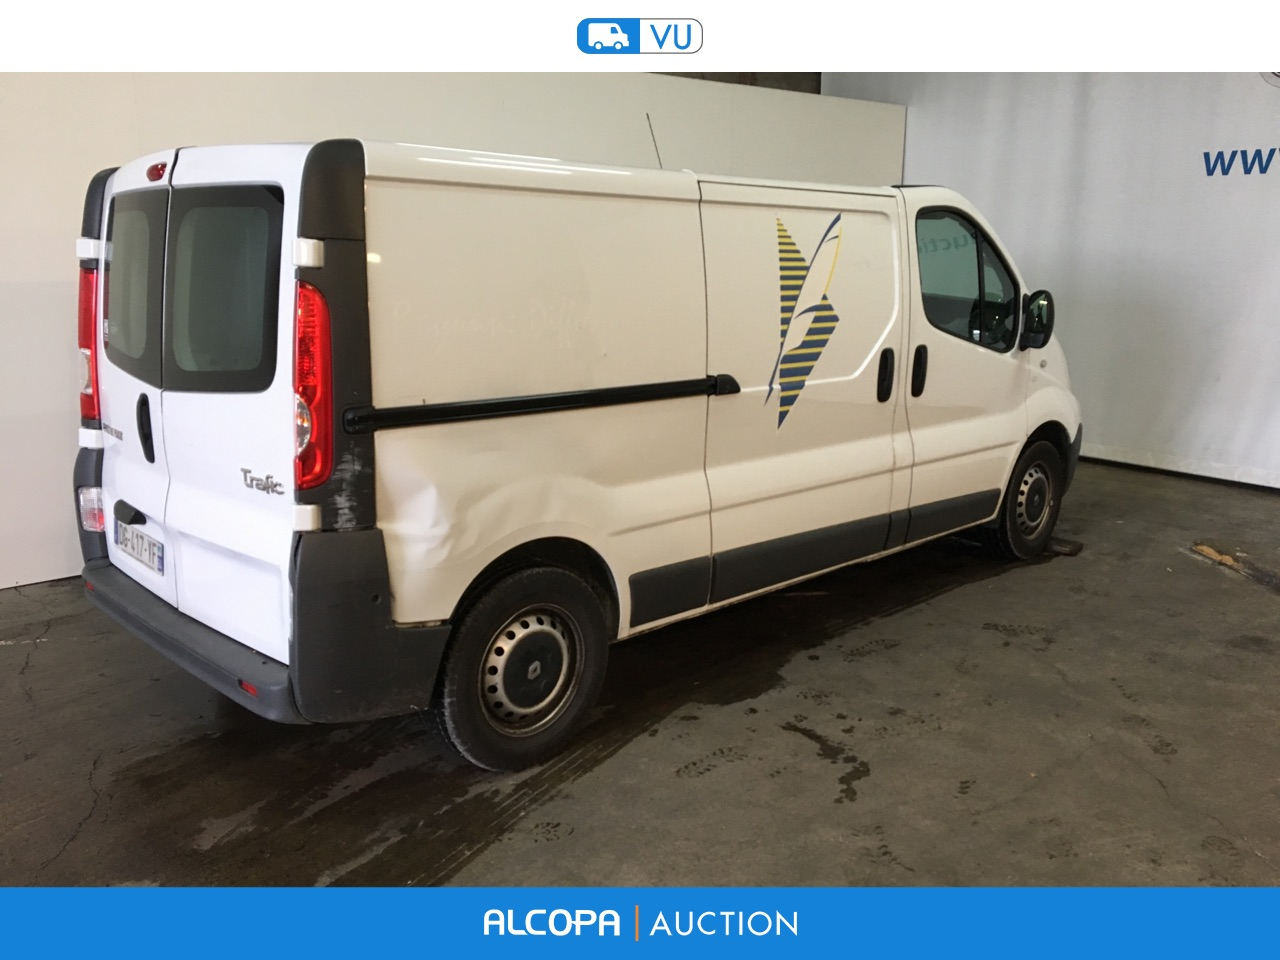 renault trafic trafic fg l2h1 1200kg dci 90 grand confort tours alcopa auction. Black Bedroom Furniture Sets. Home Design Ideas